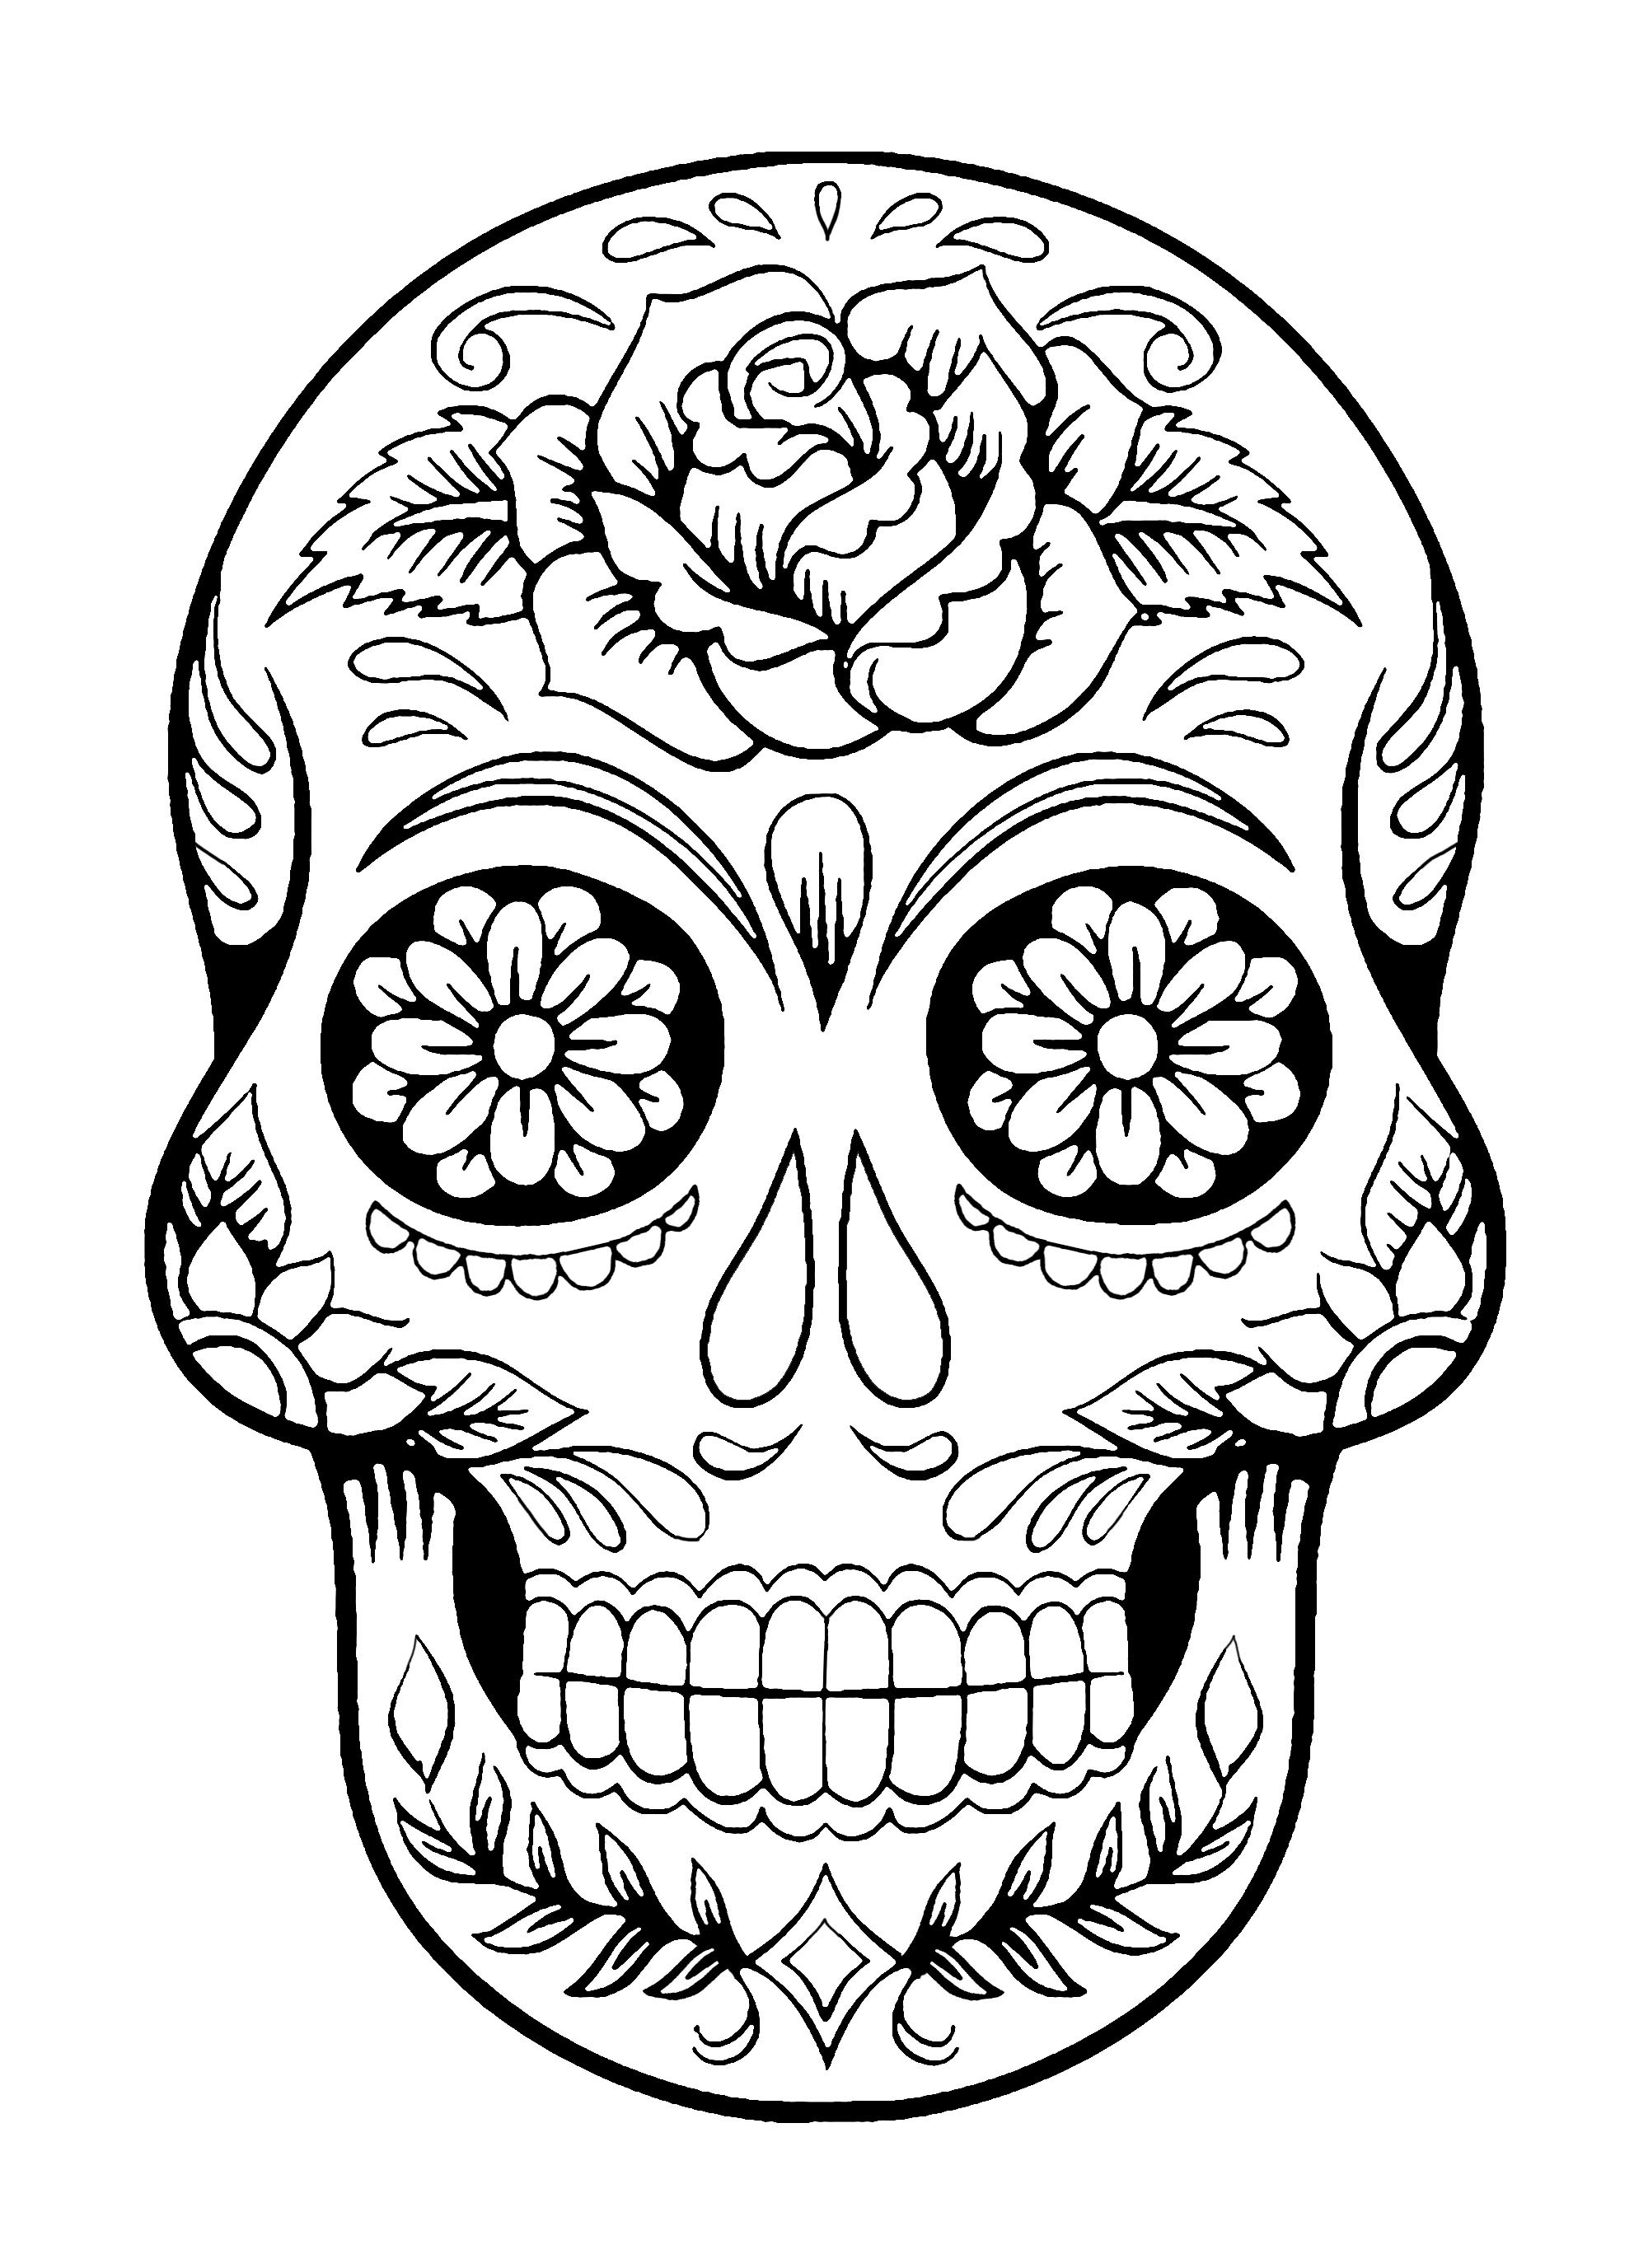 - Day Of The Dead Coloring Pages El Dia De Los Muertos 4 El Dia De